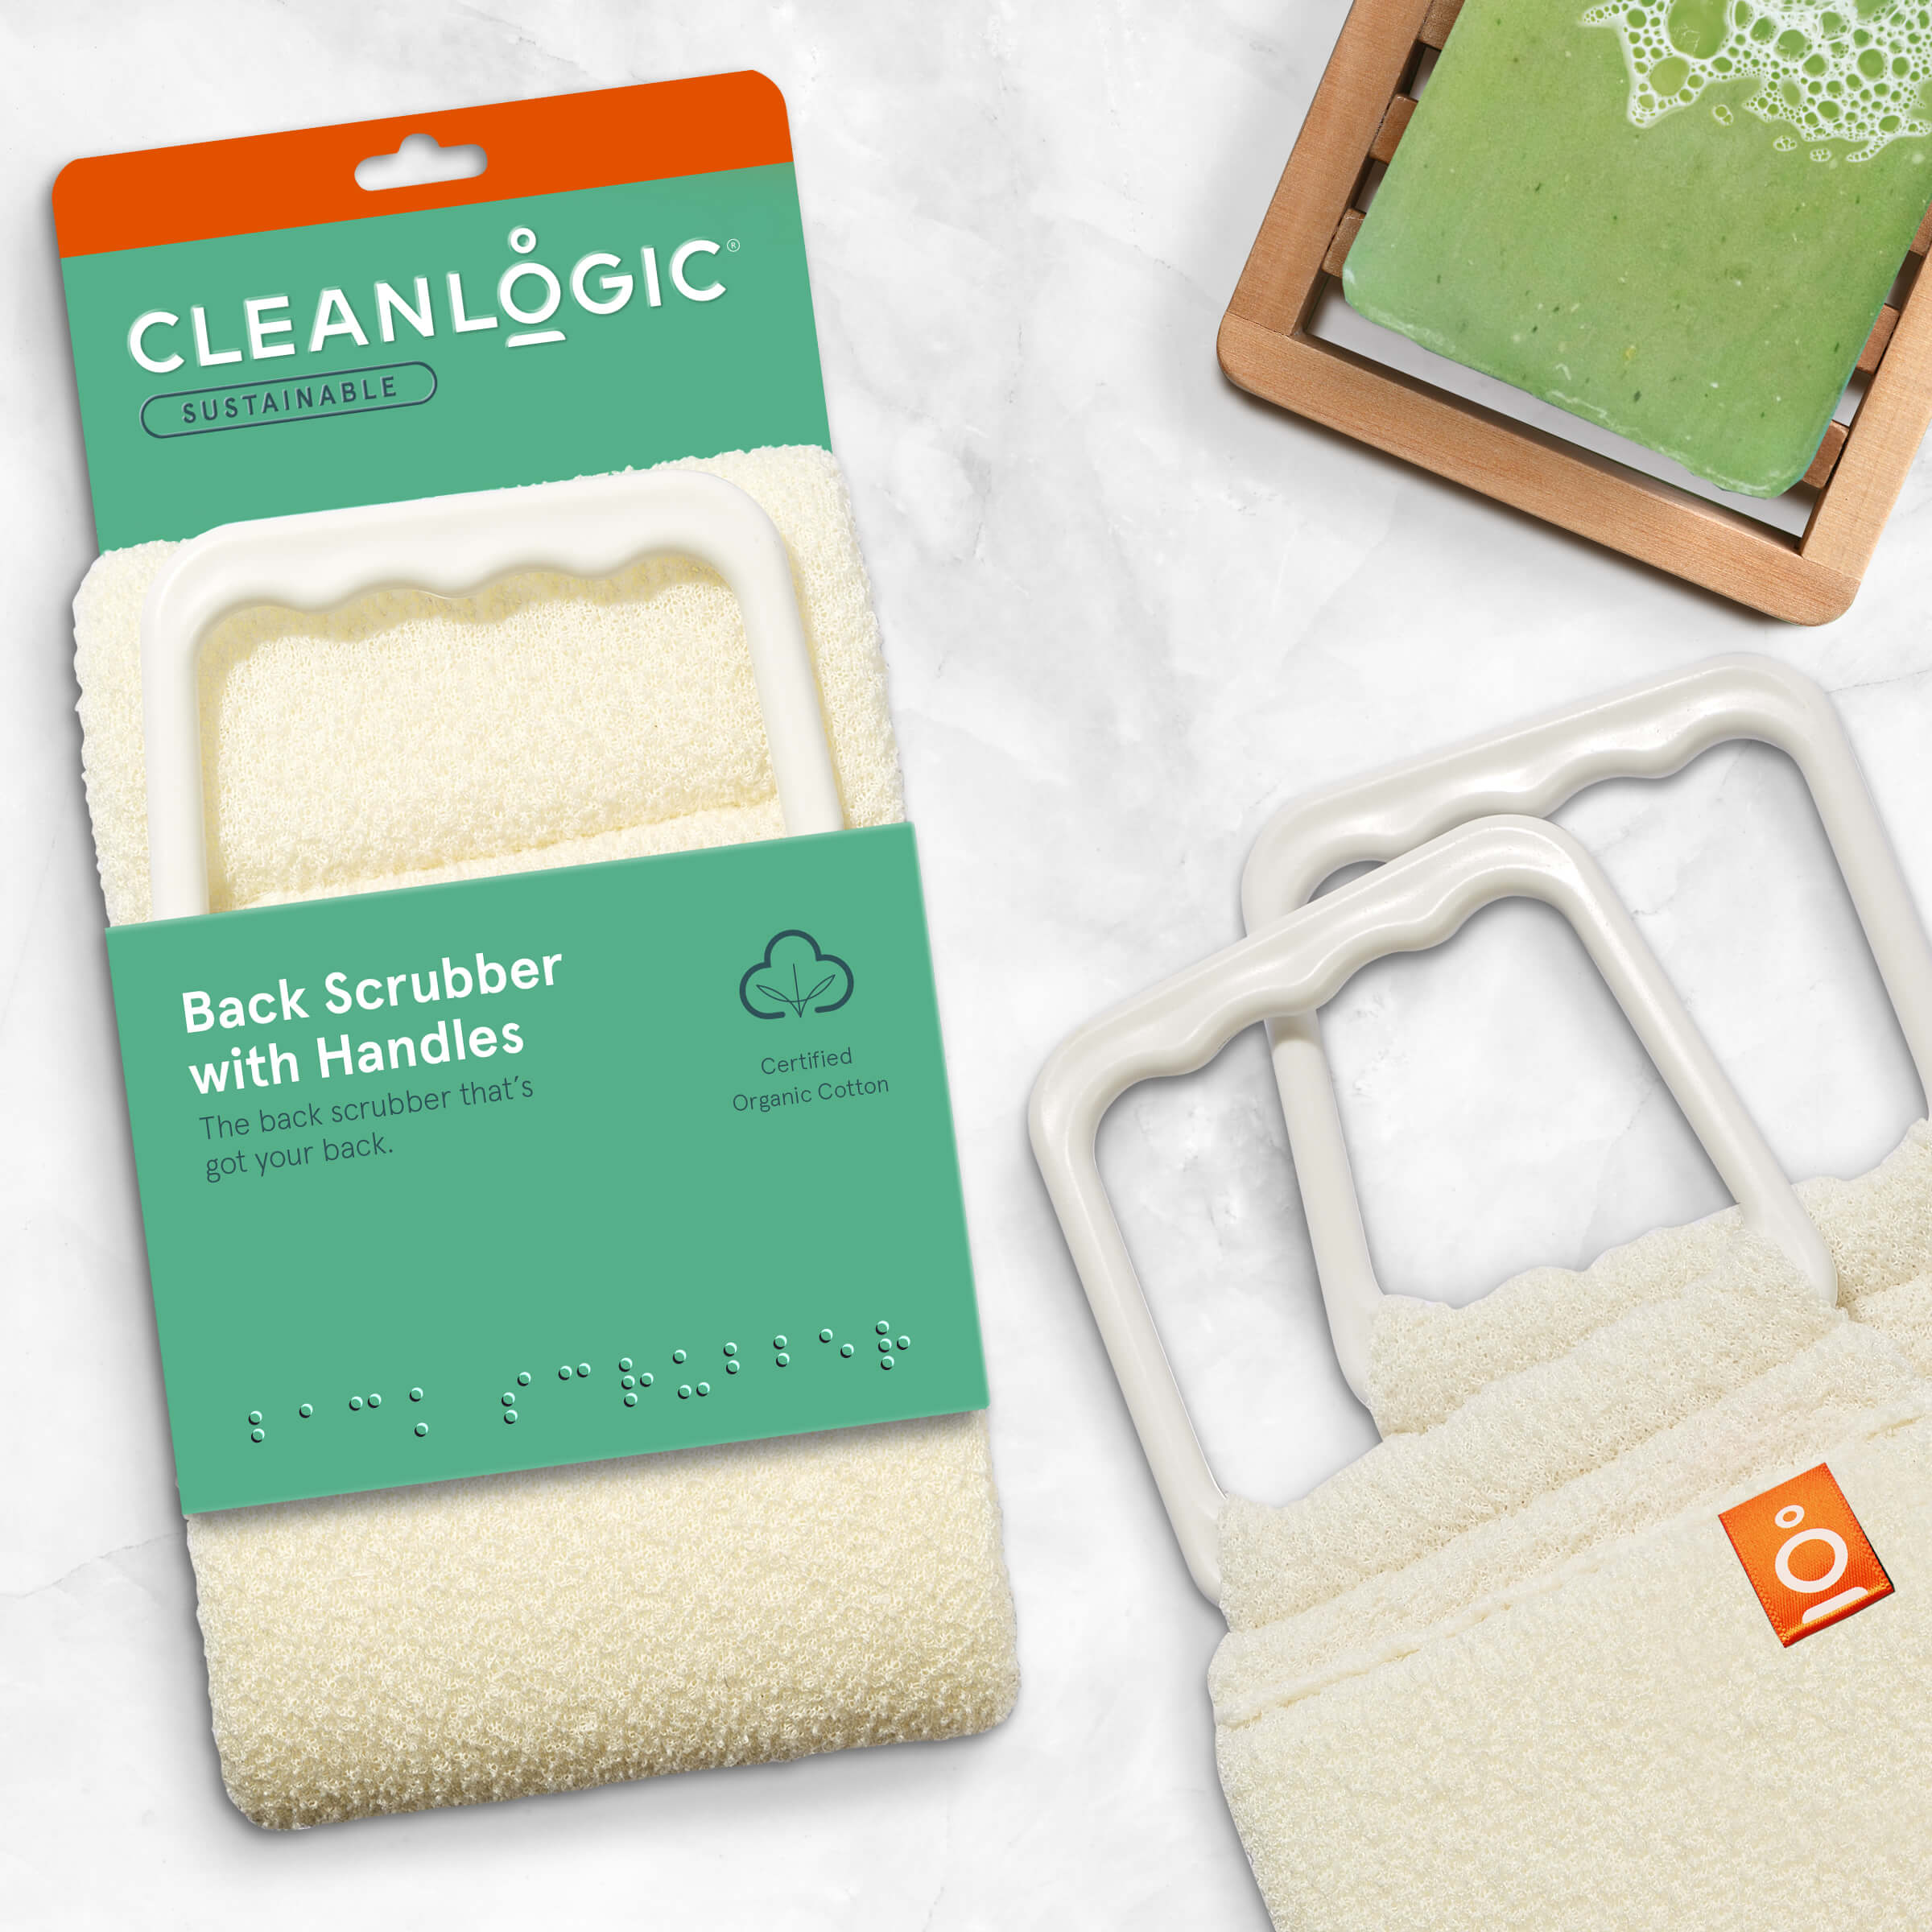 Cleanlogic Sustainable Back Scrubber with Handles